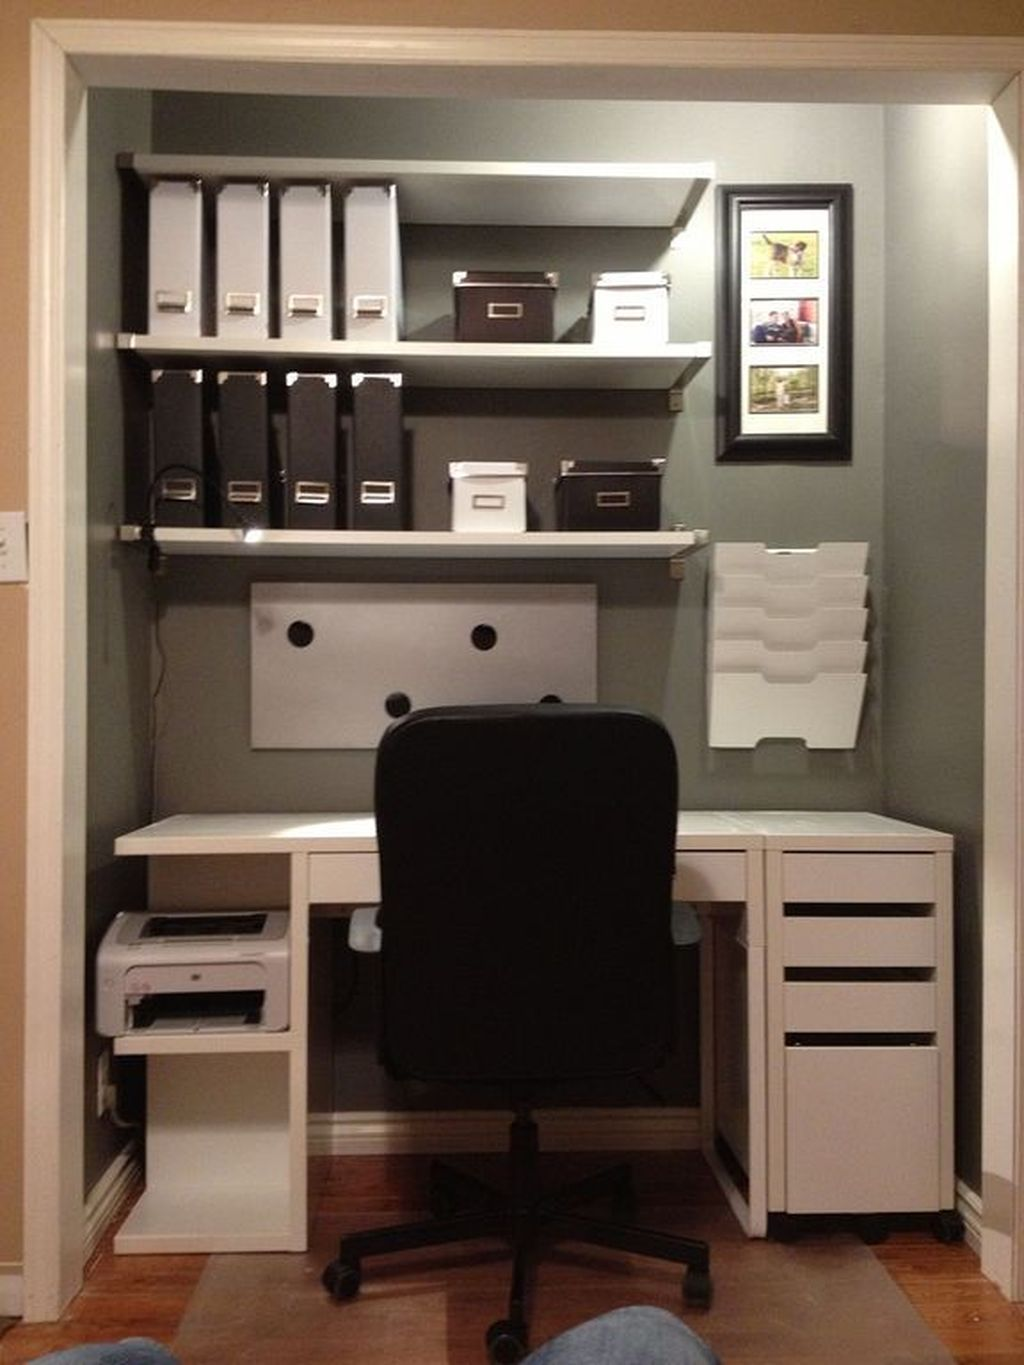 Pin On Home Office Rooms Storage Organizing Diy